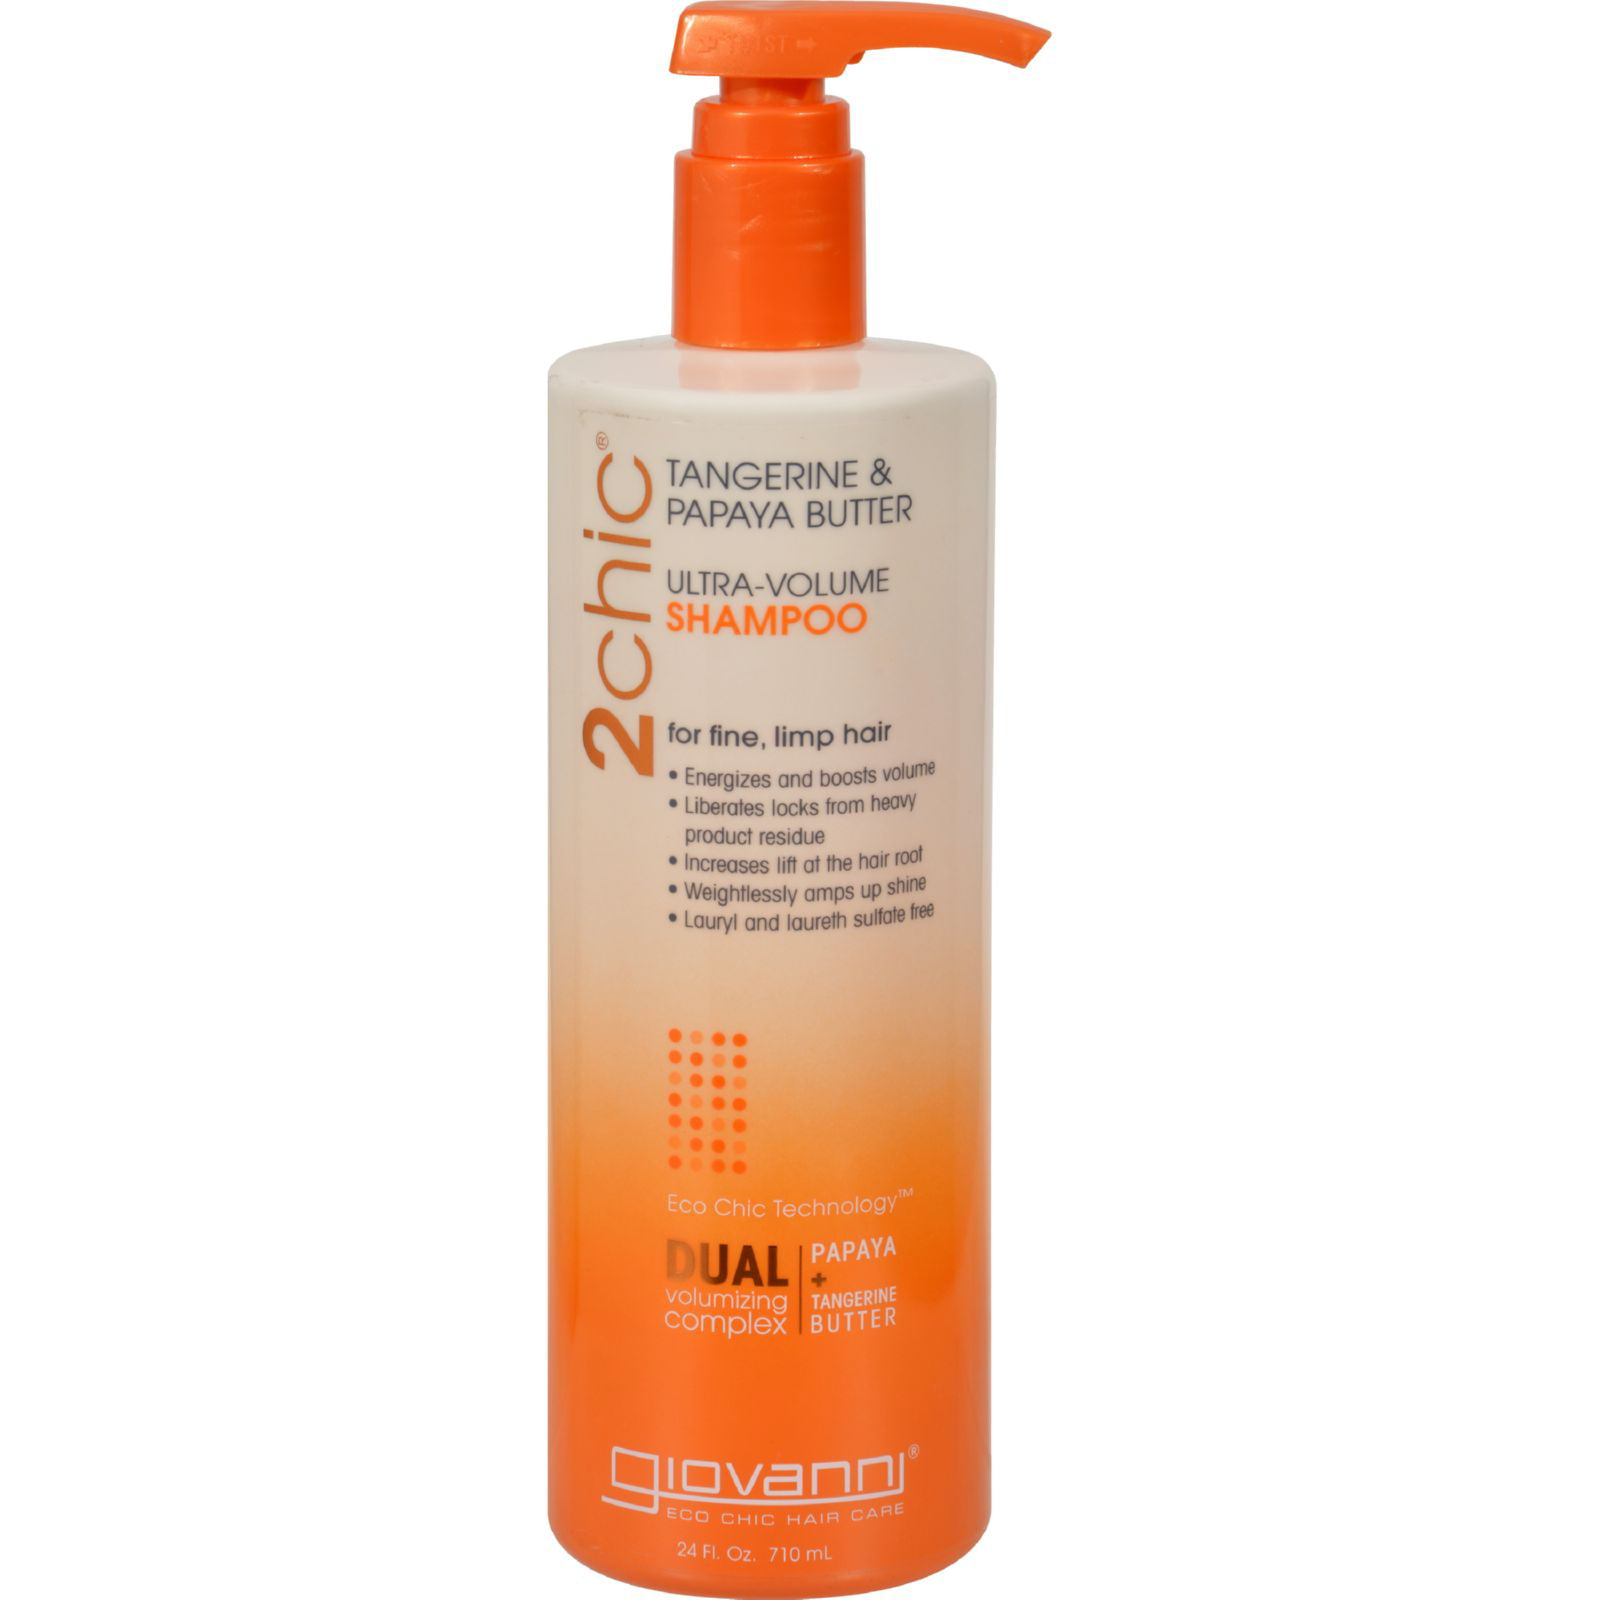 Giovanni 2chic Ultra-Volume Shampoo, 24 oz by Giovanni